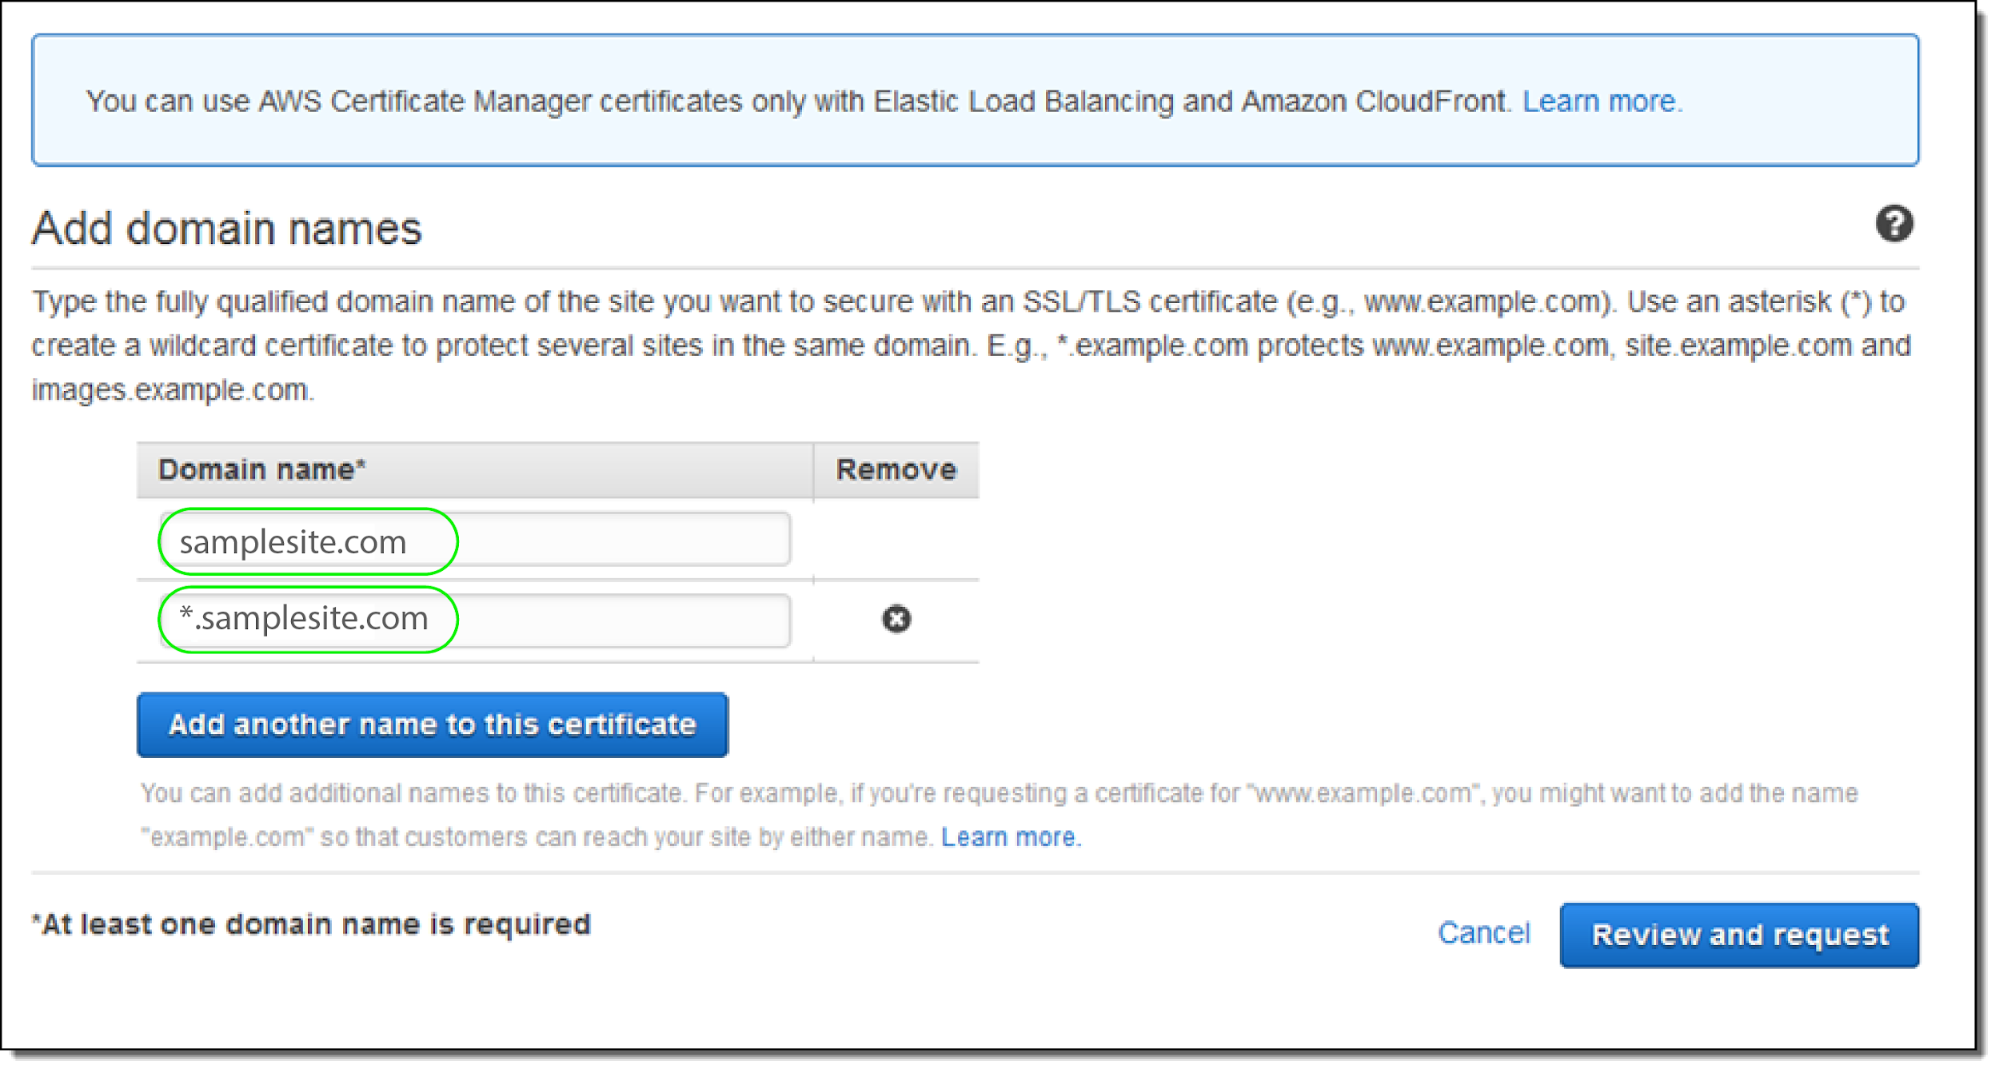 AWS Certificate Manager - Add Domain Name